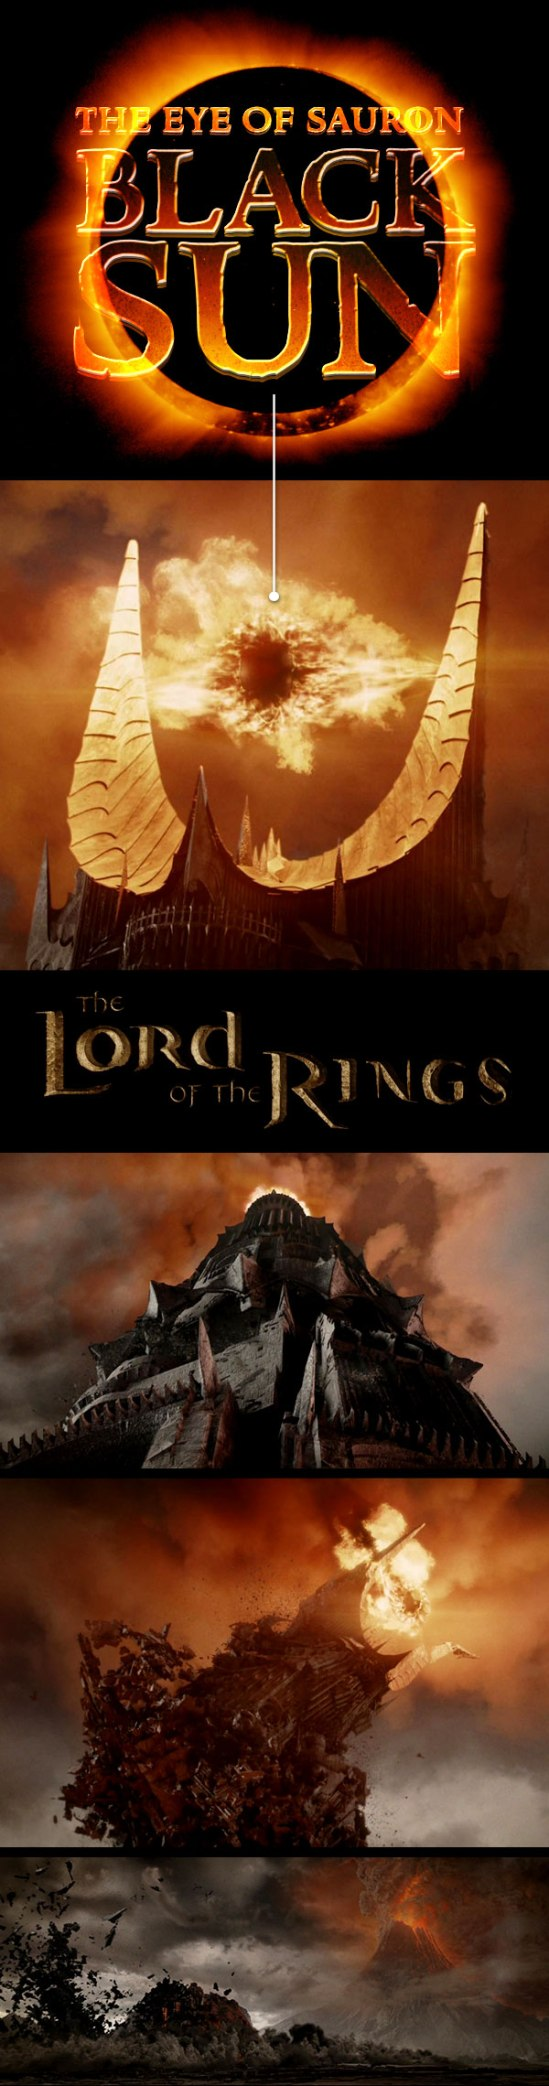 dark MonarKy - The Lord of the Rings - The Eye of Sauron - Black Sun Subliminal